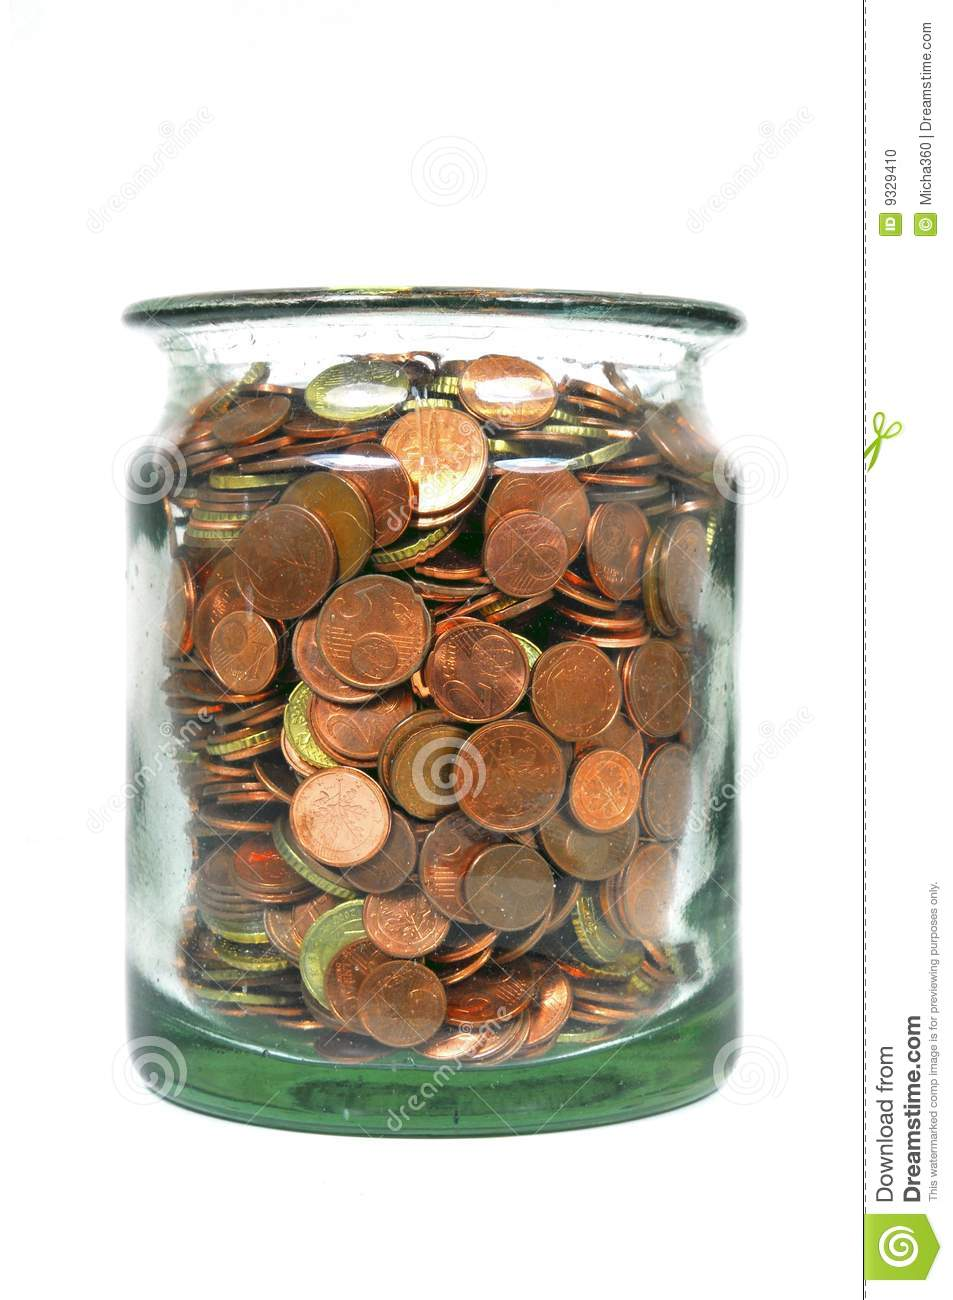 Money Jar With Euro Coins Stock Photo Image Of Investment